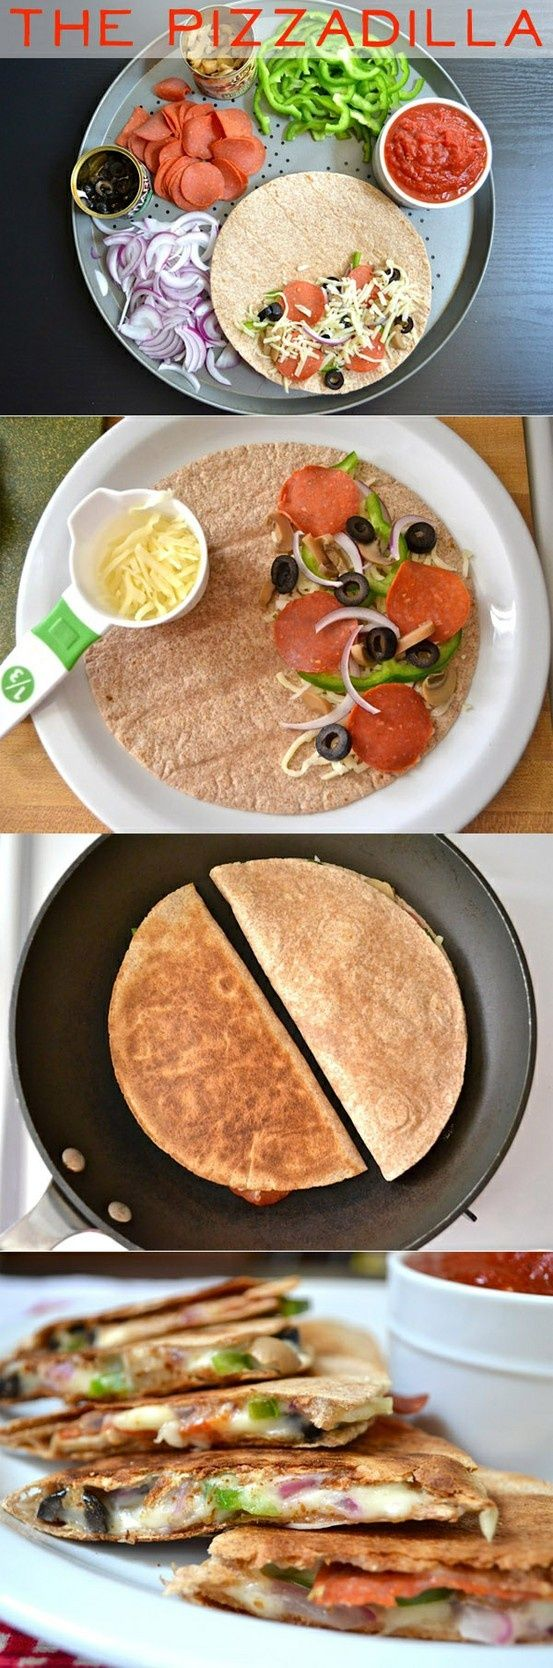 Pizzadillas - healthy pizza!i am going to make this vegan my using meatless pepperoni and daiya cheese!!! Hubby will be very happy